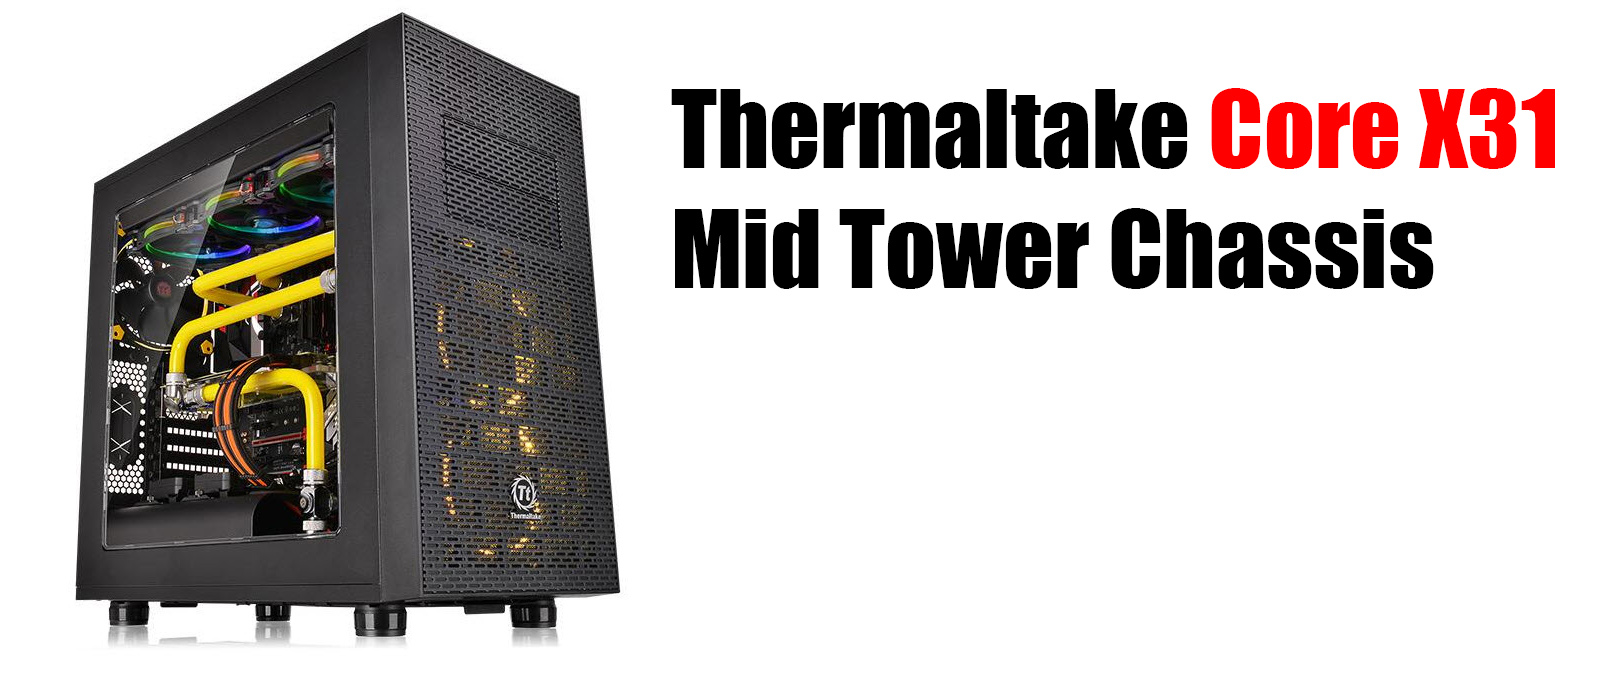 thermaltake core x31 mid tower chassis Thermaltake Core X31 Mid Tower Chassis